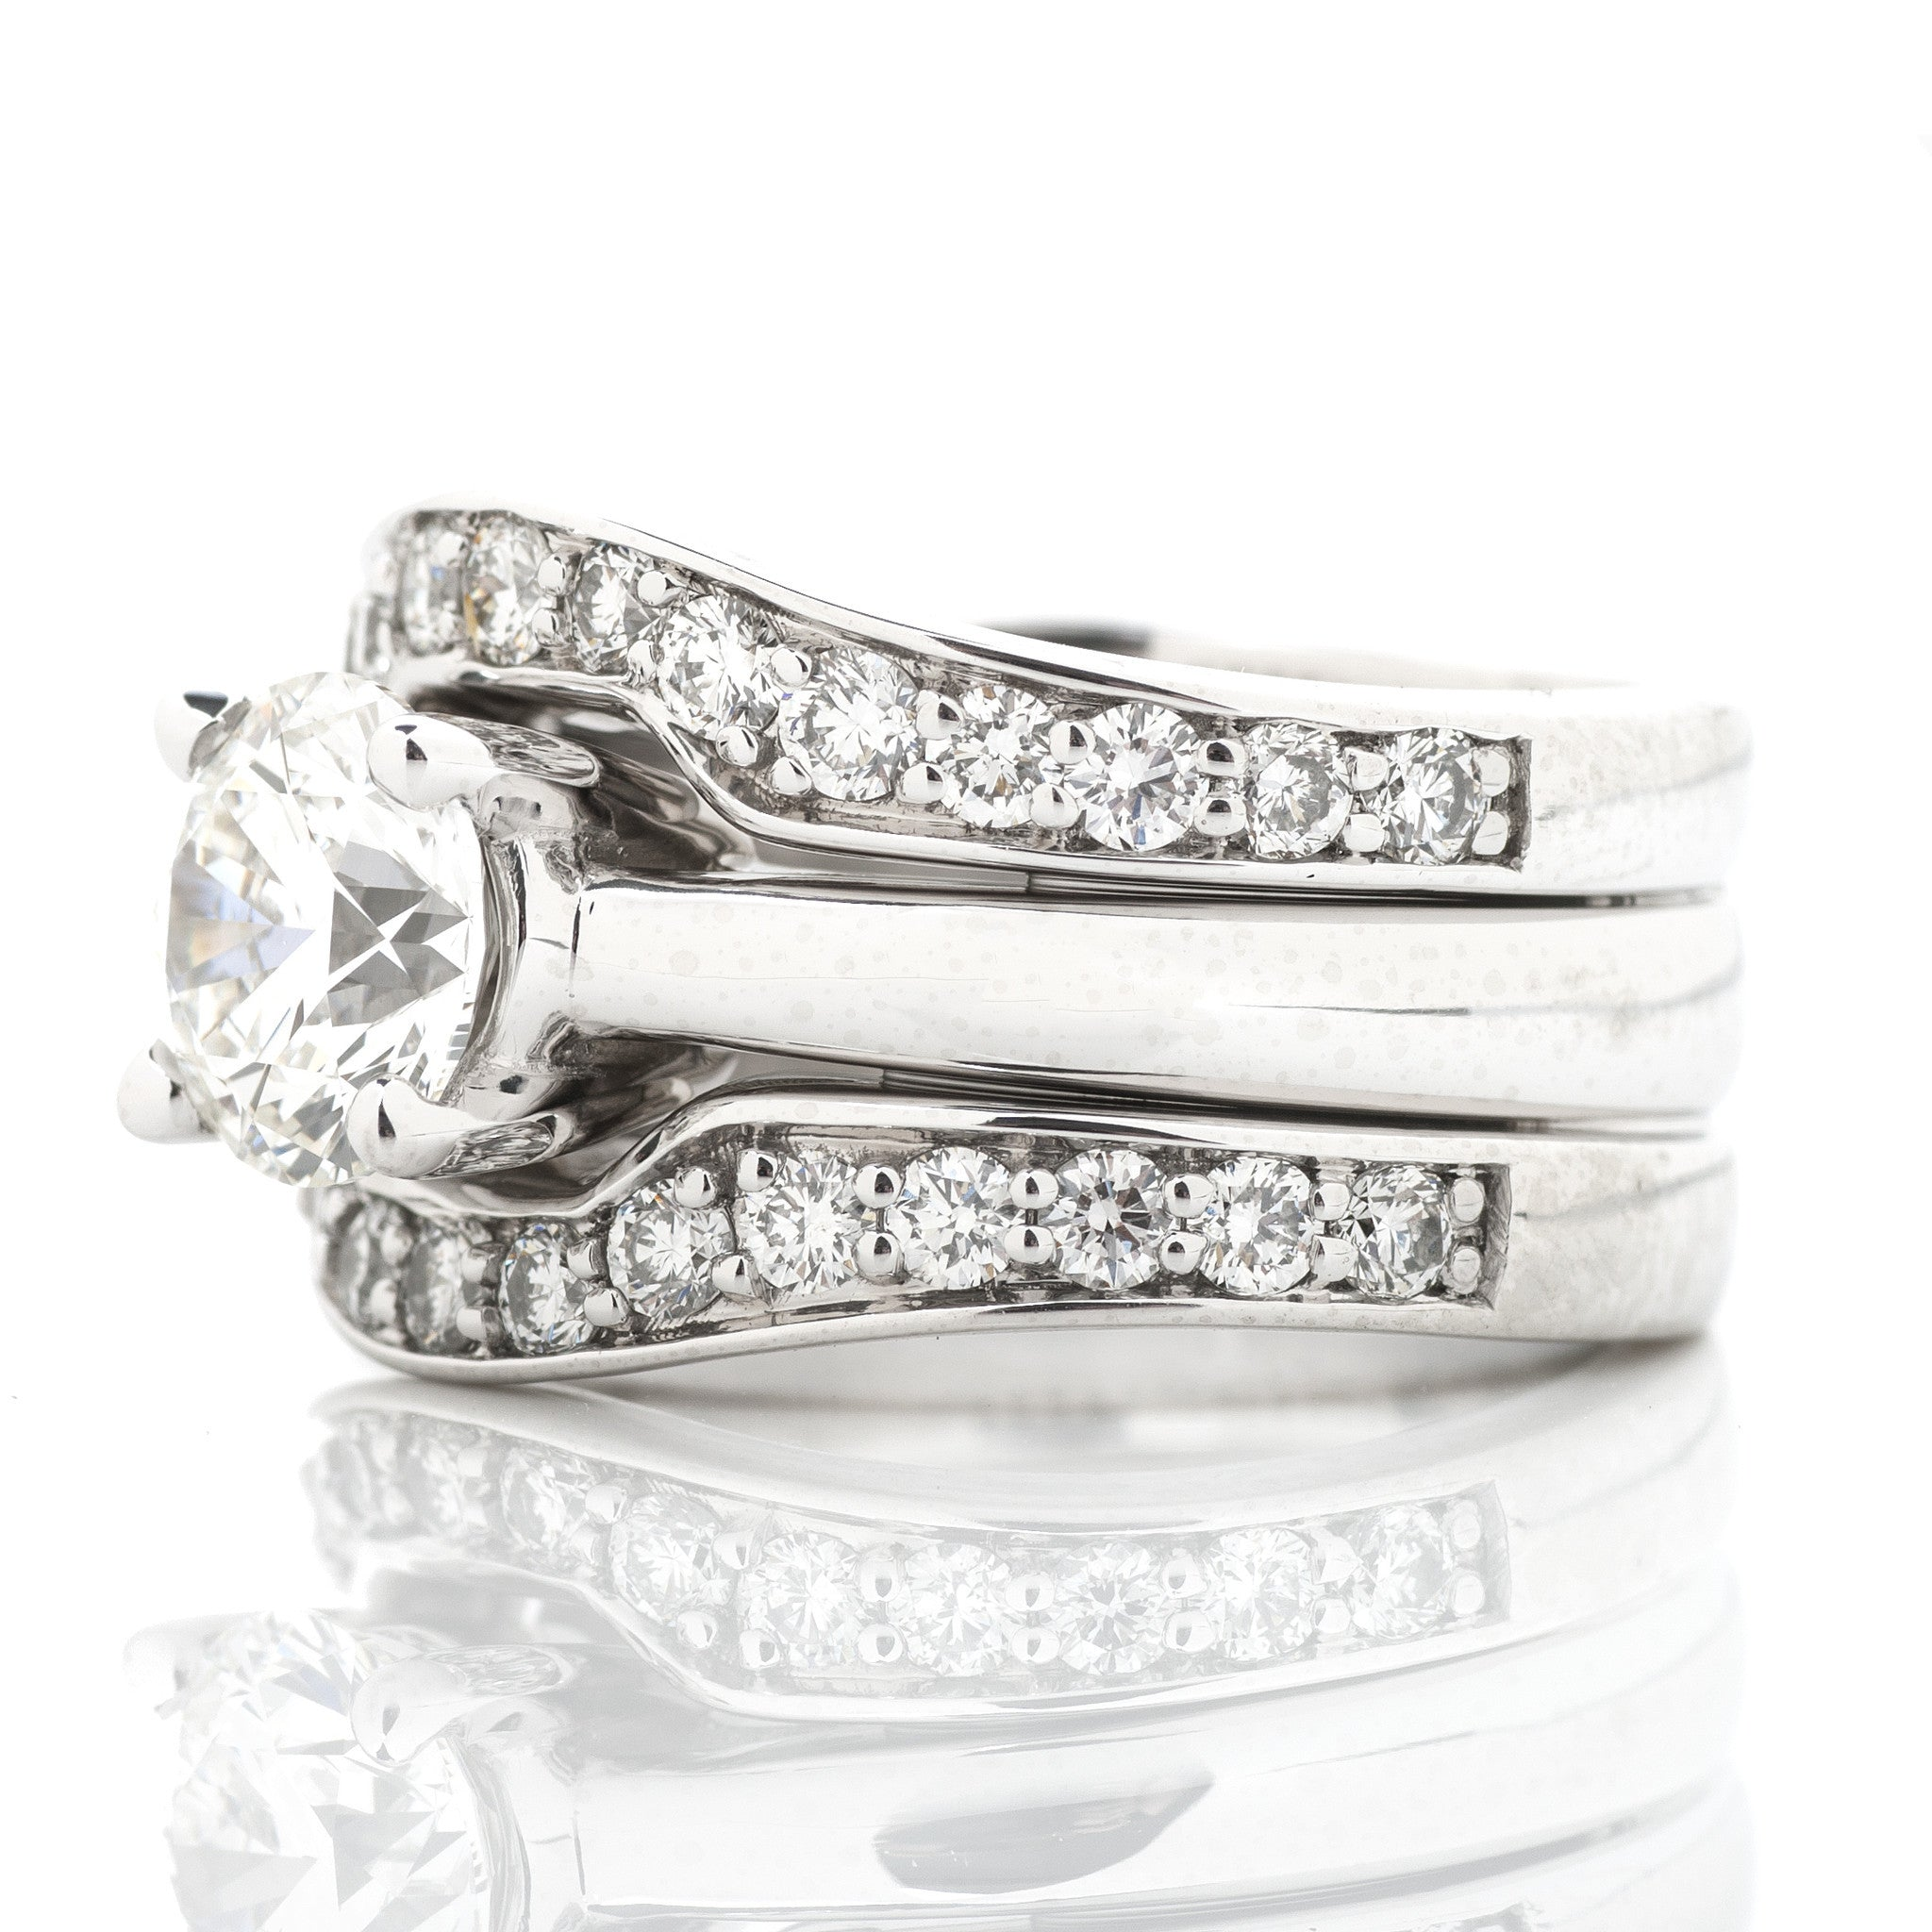 Platinum Statement Engagement Ring with Diamond Border 2